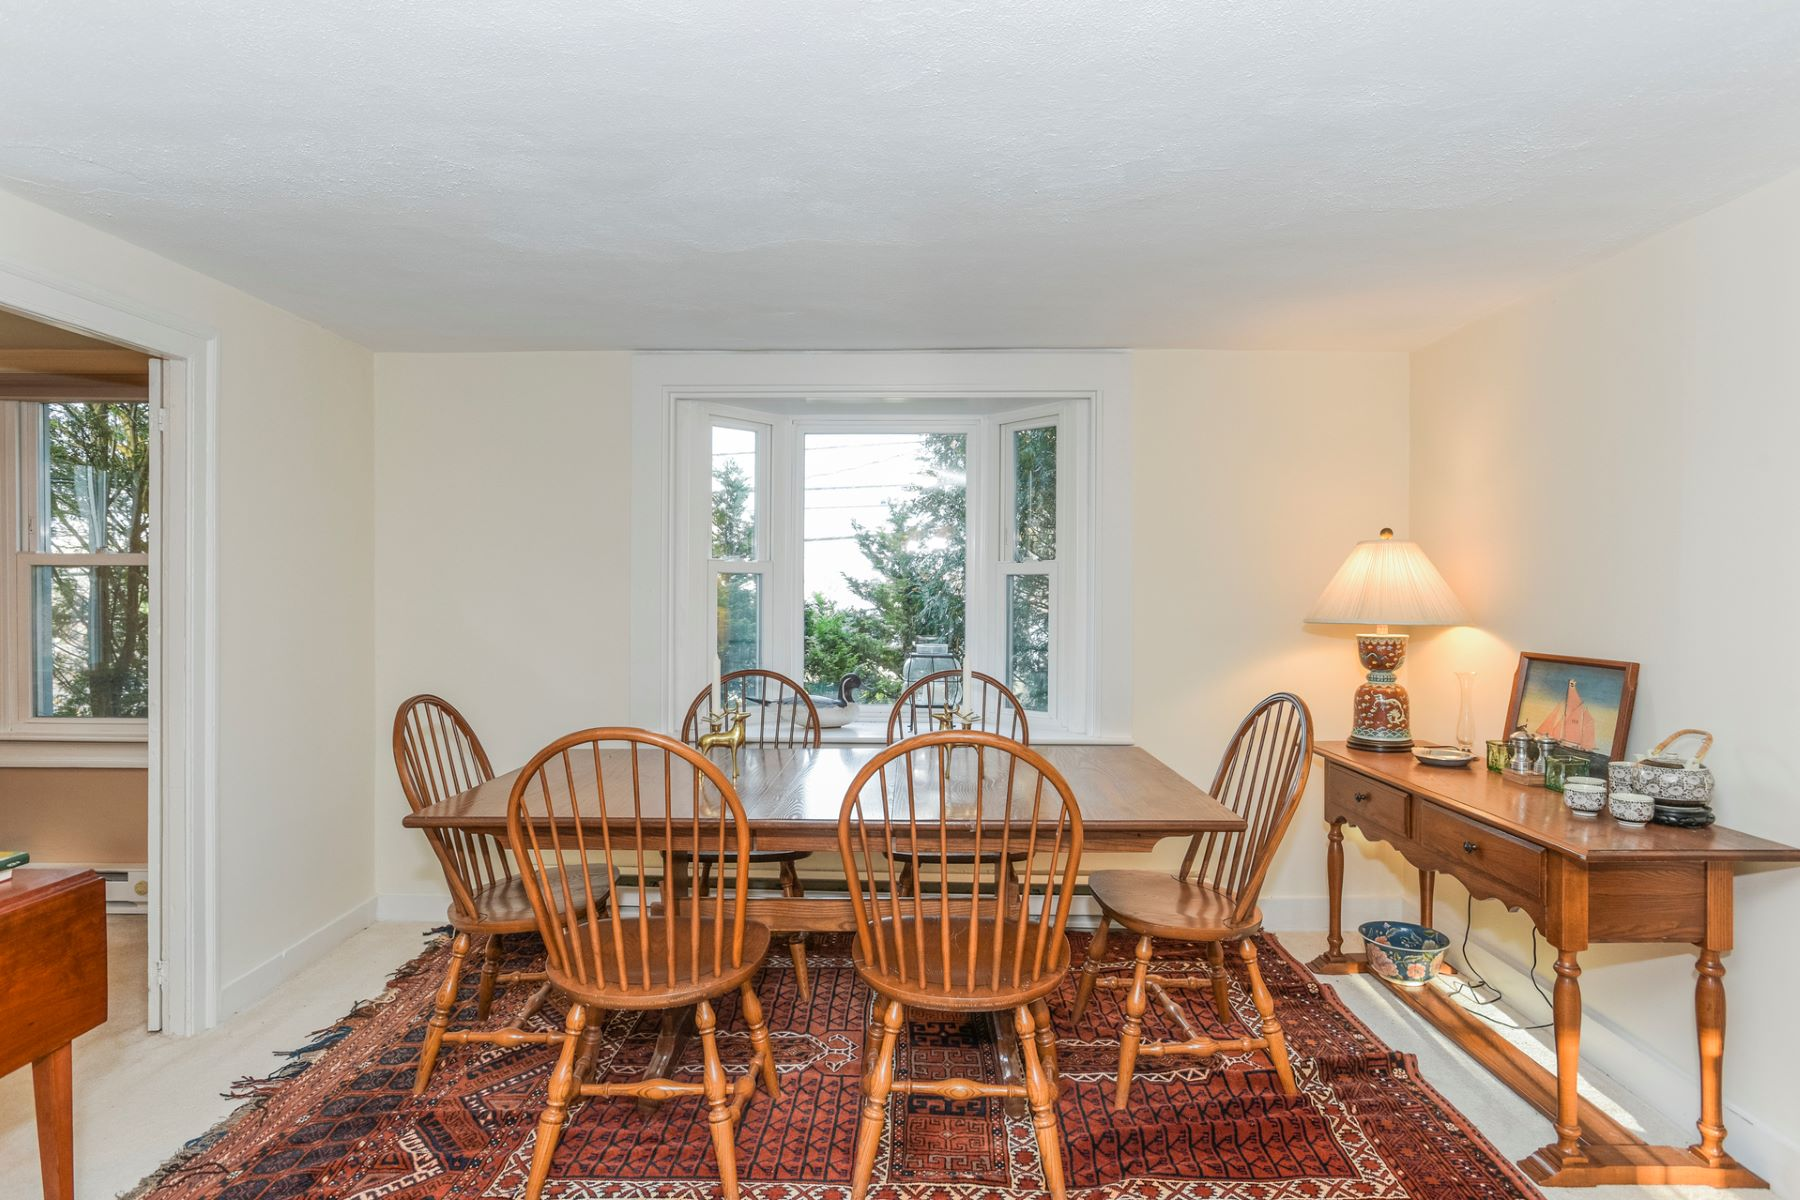 Additional photo for property listing at  Essex, Connecticut 06426 Hoa Kỳ